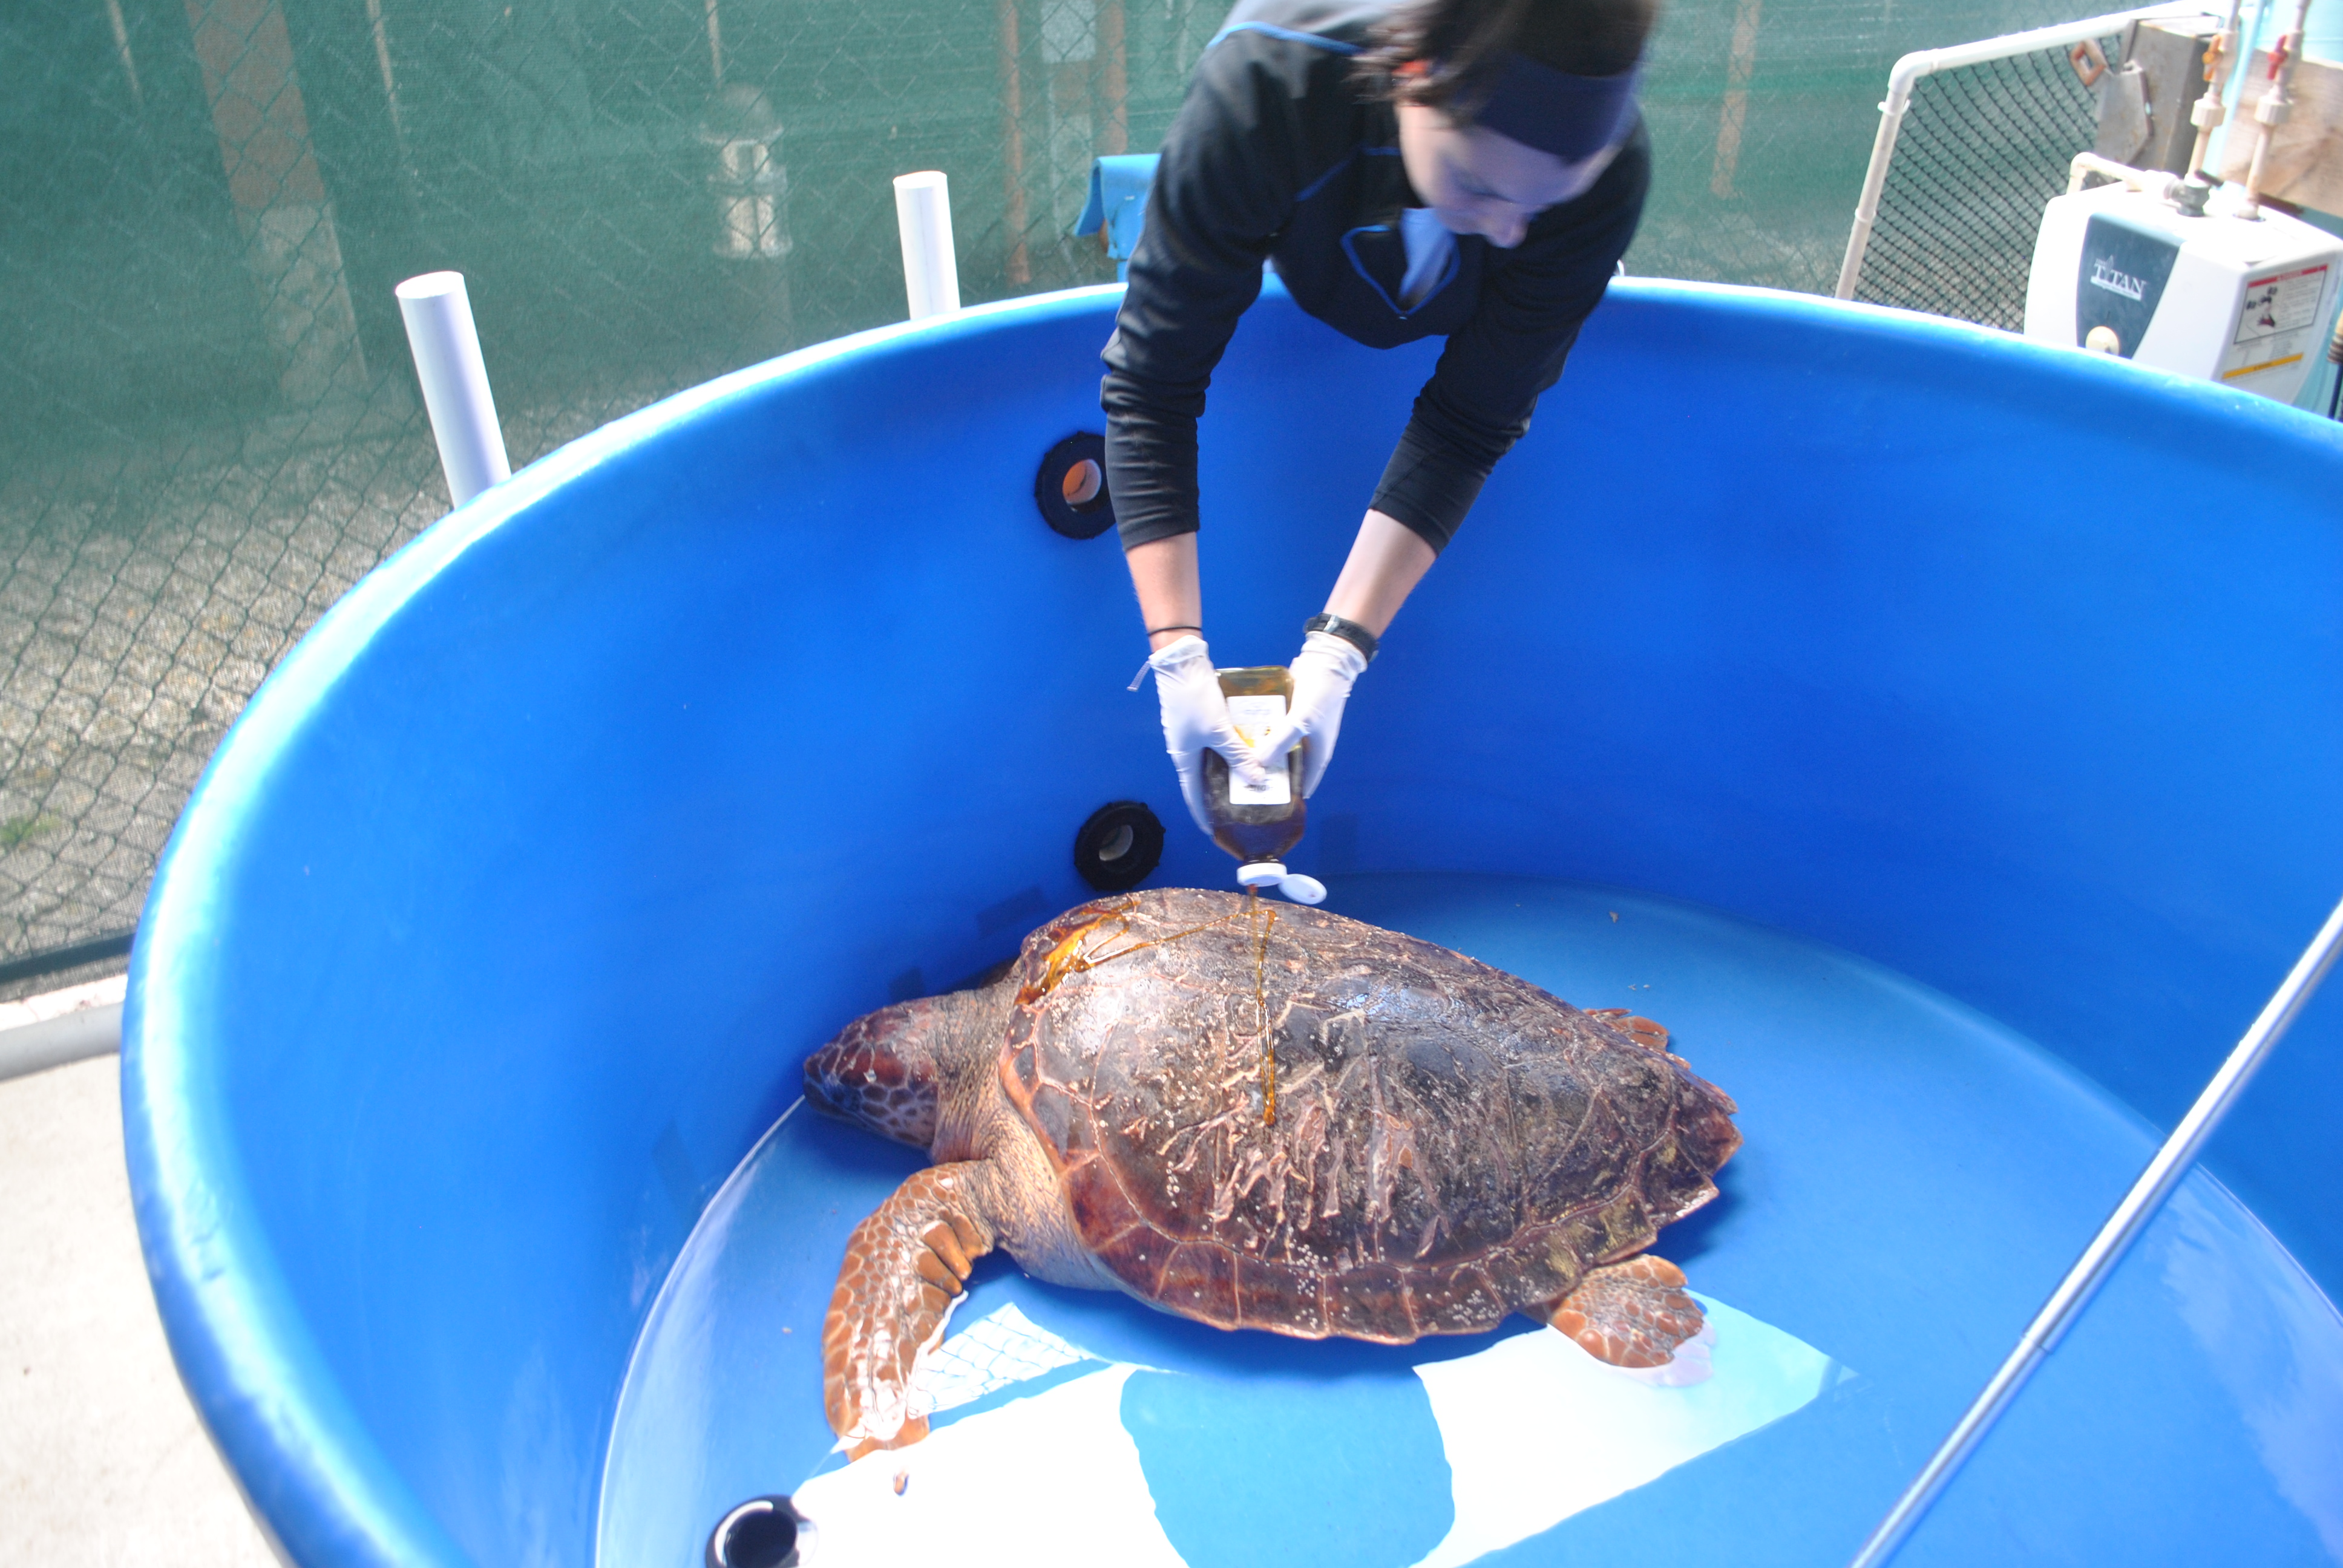 A worker applies honey to an injured turtle's shell to help it heal at Gumbo Limbo.